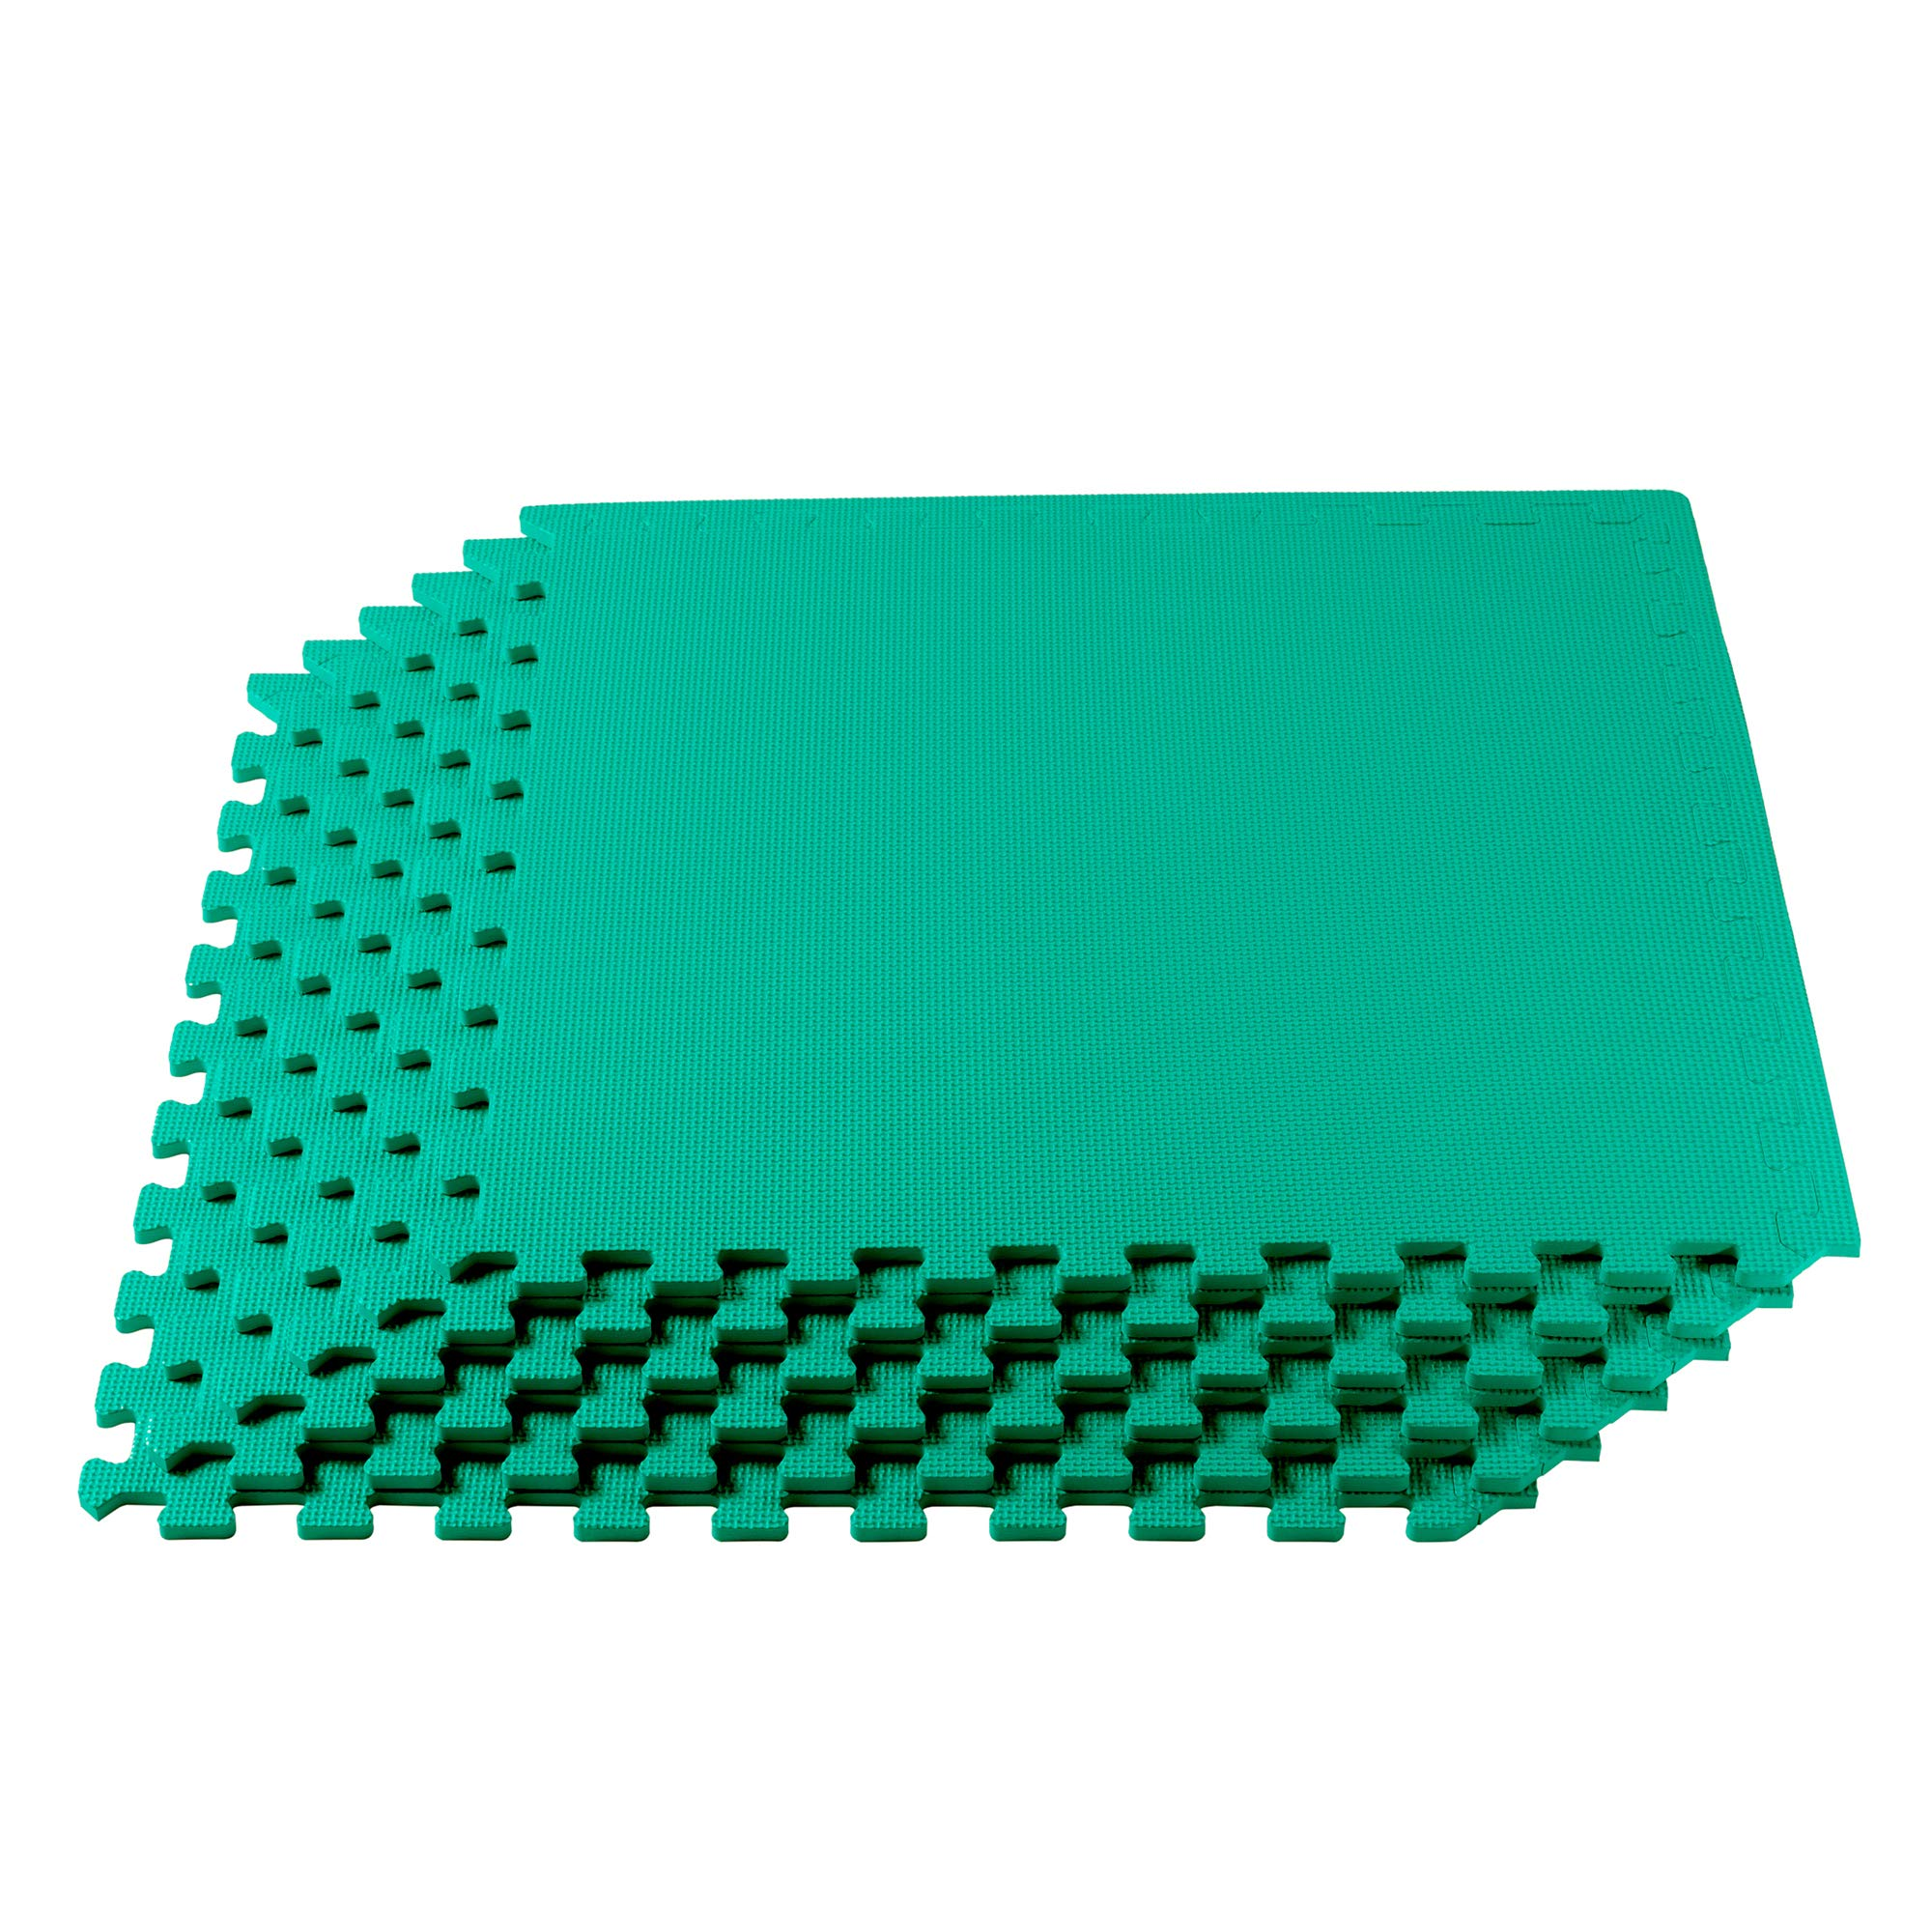 We Sell Mats Multipurpose Exercise Floor Mat with EVA Foam, Interlocking Tiles, Anti-Fatigue, for Home or Gym, 16 Square Feet (4 Tiles), 24 x 24 x 3/8 Inches, Green